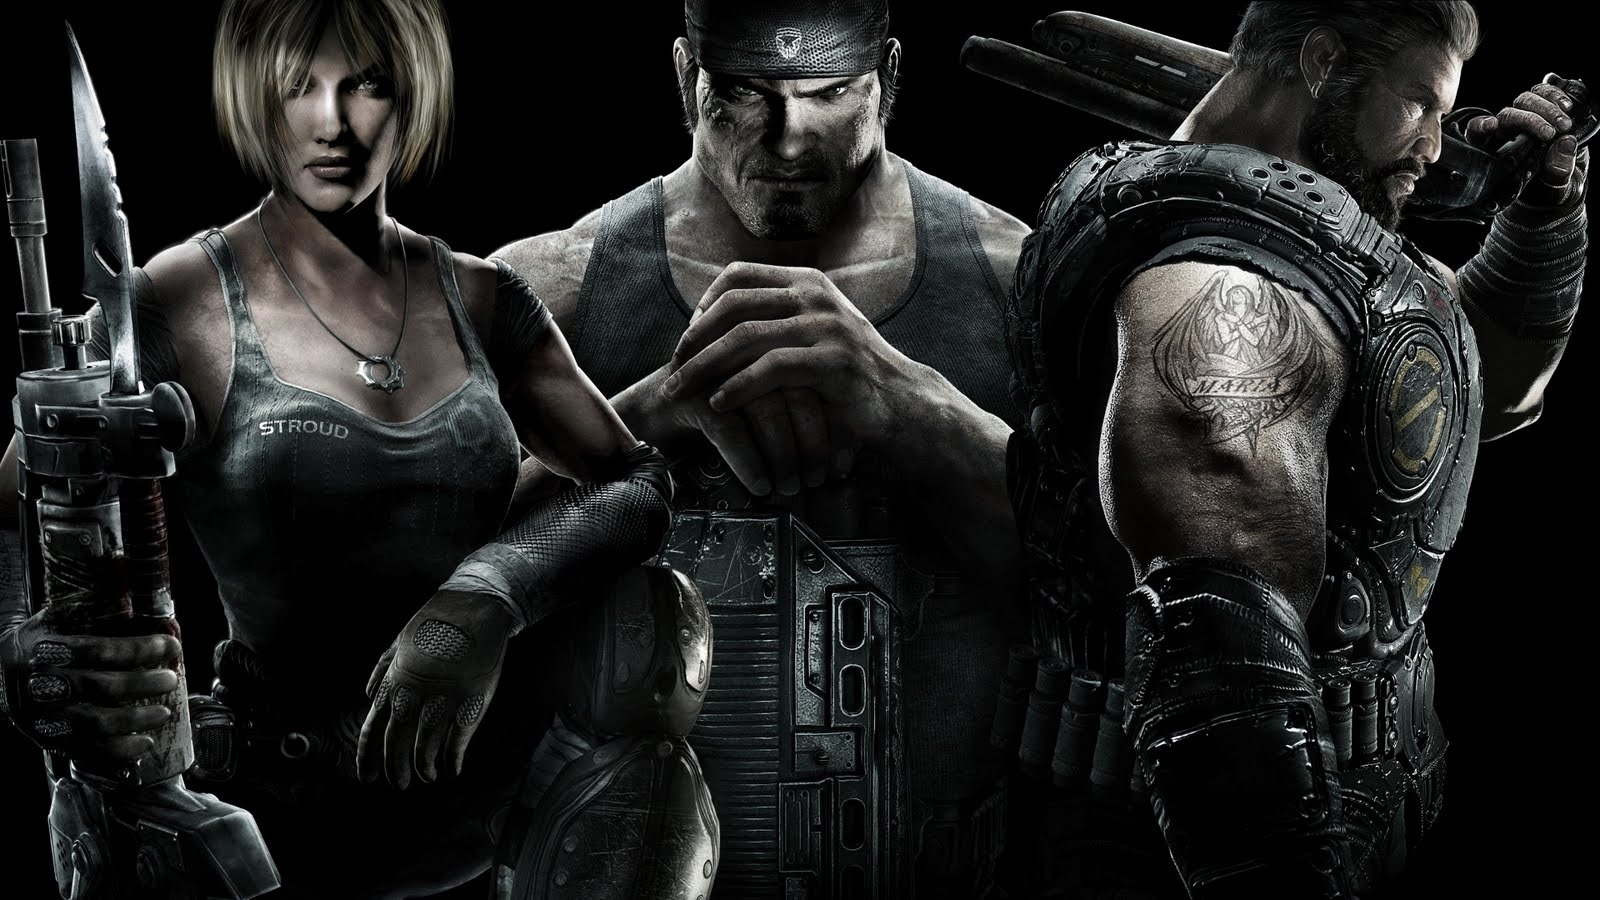 http://3.bp.blogspot.com/-BmCgCZ_XB8k/TlvgvcMpreI/AAAAAAAADCE/JA2YKWnMEIw/s1600/Gears+of+war+3+wallpapers+%25289%2529.jpg